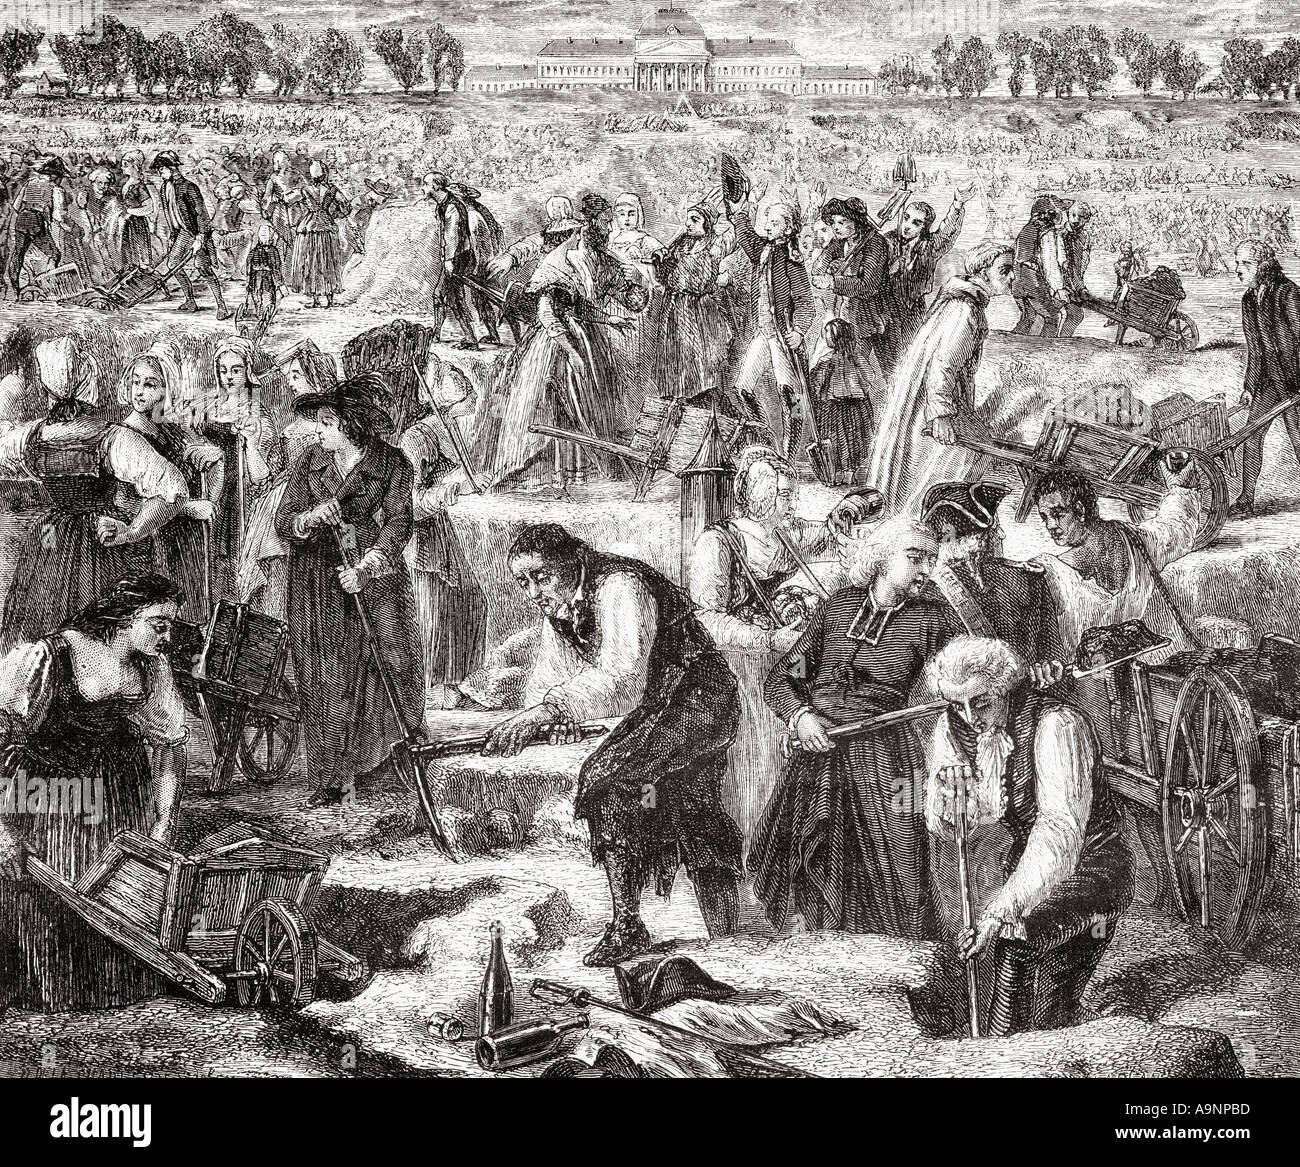 Everyone at work in the Champ de Mars.  From Histoire de la Revolution Francaise by Louis Blanc Stock Photo